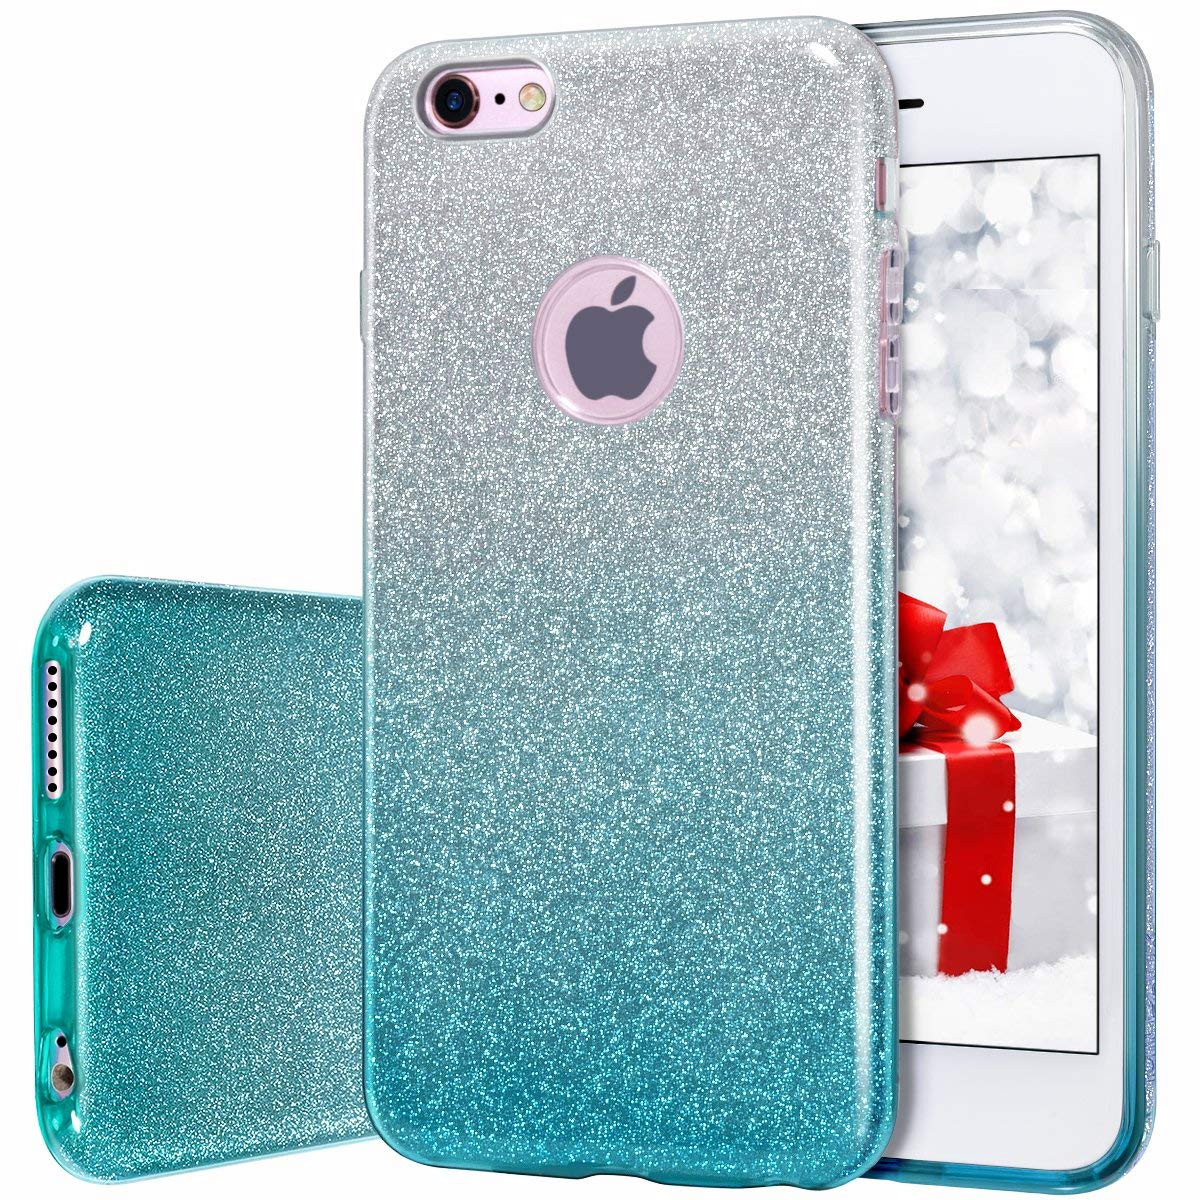 new arrival 43e61 1dabe MATEPROX iPhone 6s Plus Case iPhone 6 Plus Case Glitter Slim Crystal Bling  3 Layer Hybrid Protective Case for iPhone 6s/6 Plus 5.5'' (Gradient Green)